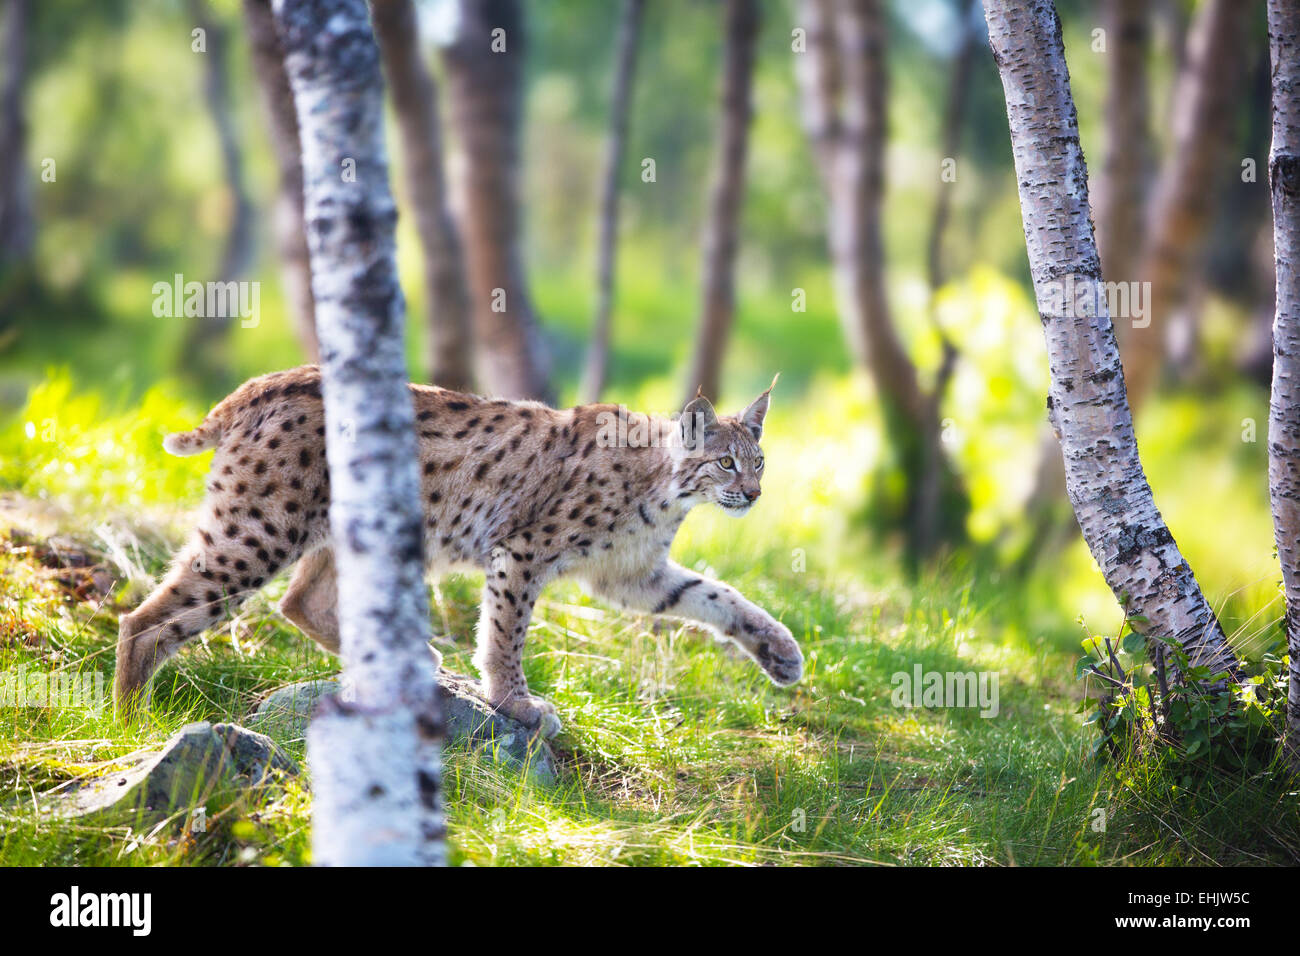 Eurasian lynx sneaks or stalking in the green forest. Stock Photo